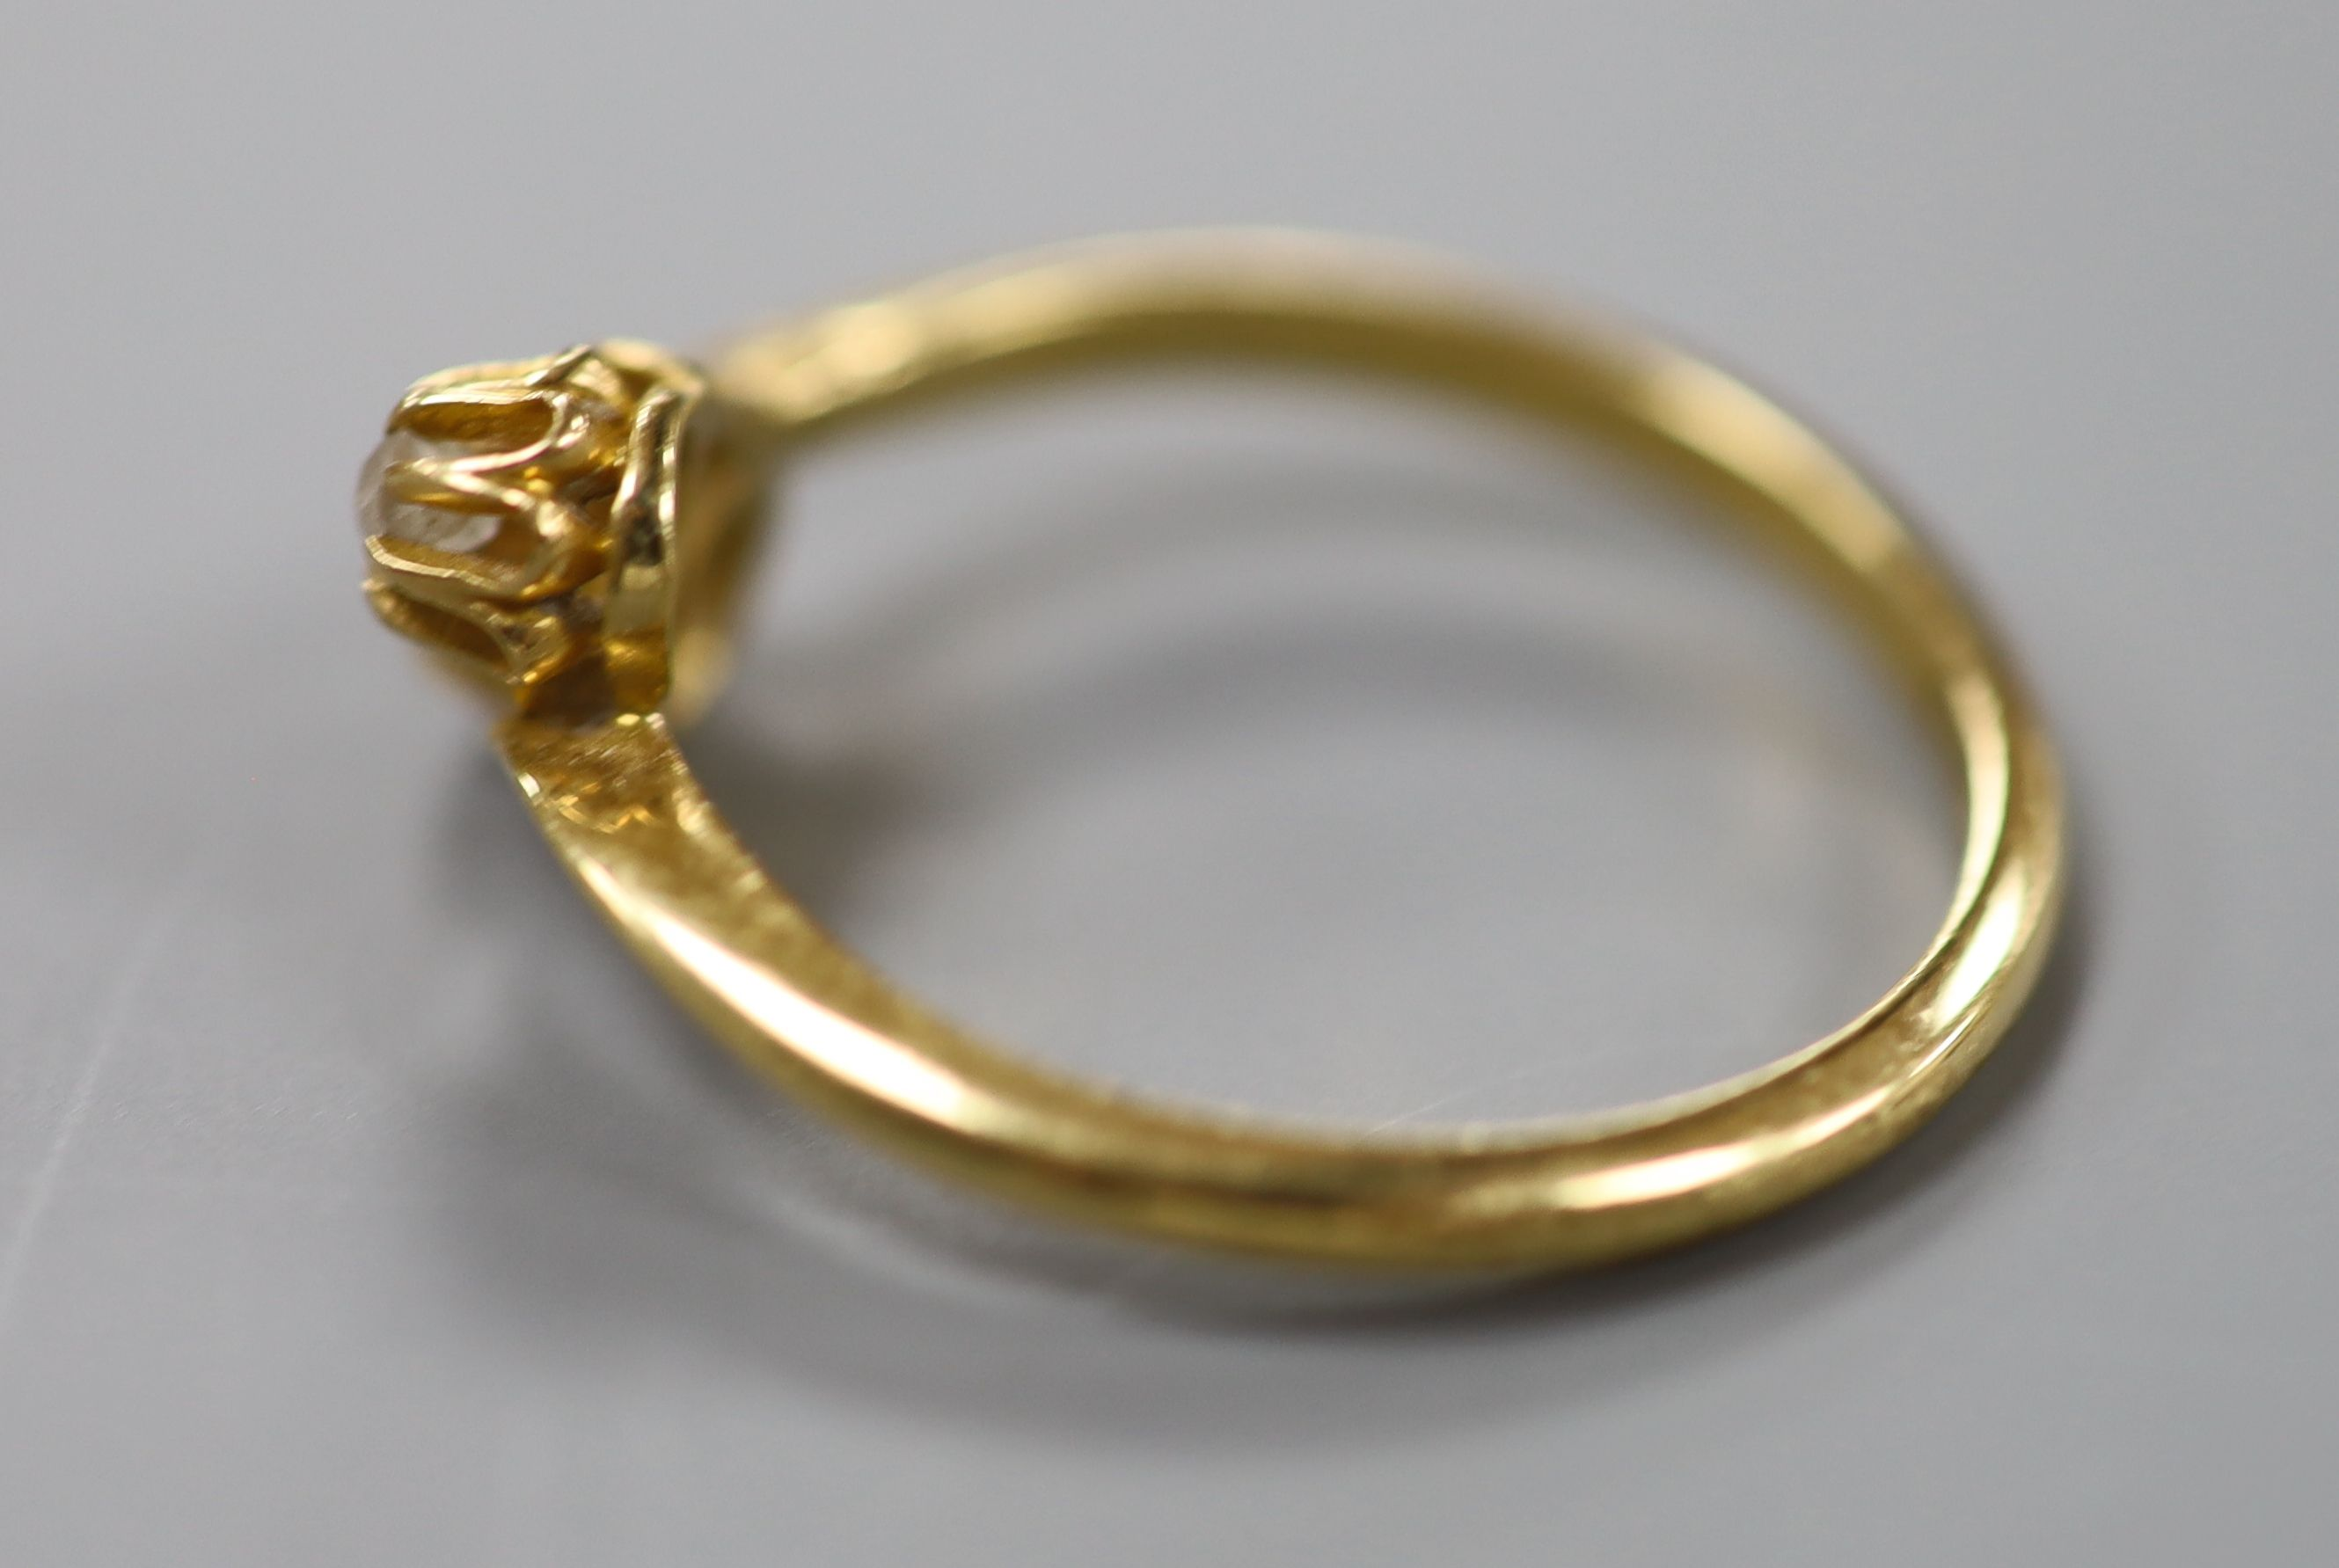 A George V 18ct gold and two stone diamond set crossover ring, size O/P, gross 2.7 grams. - Image 2 of 3